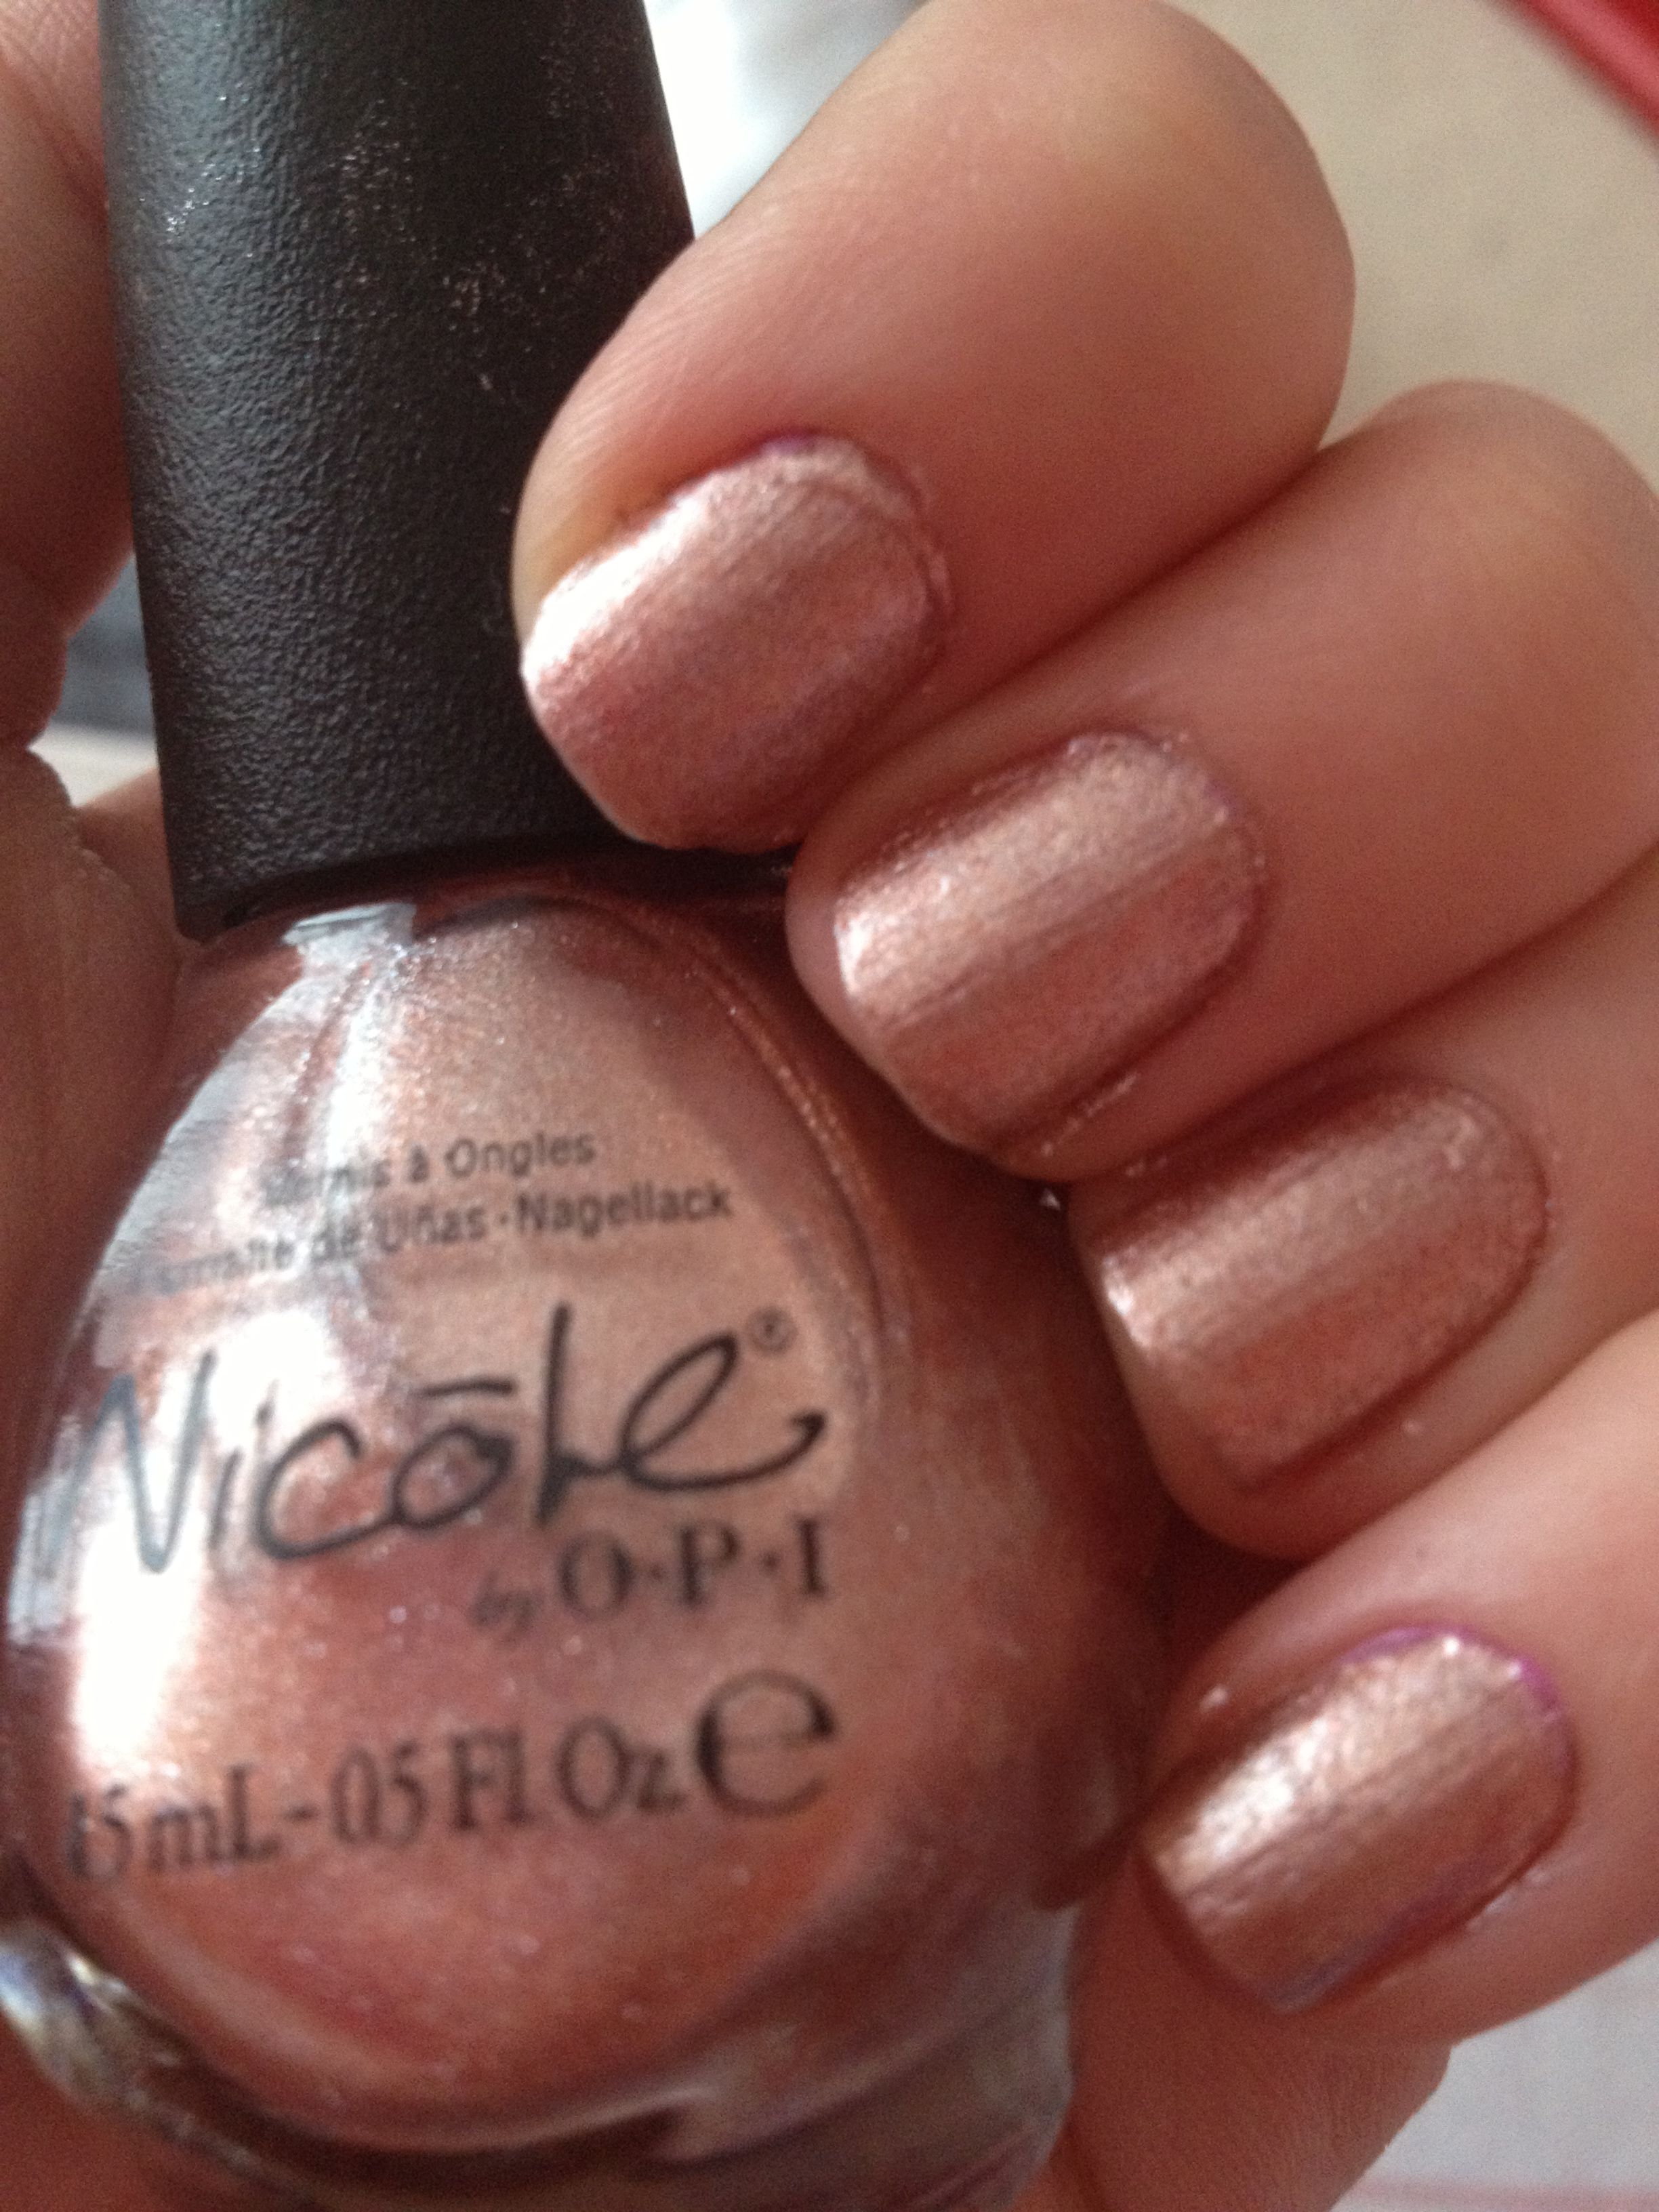 Rose gold nail polish<3  Nichole by opi 'it starts with me'